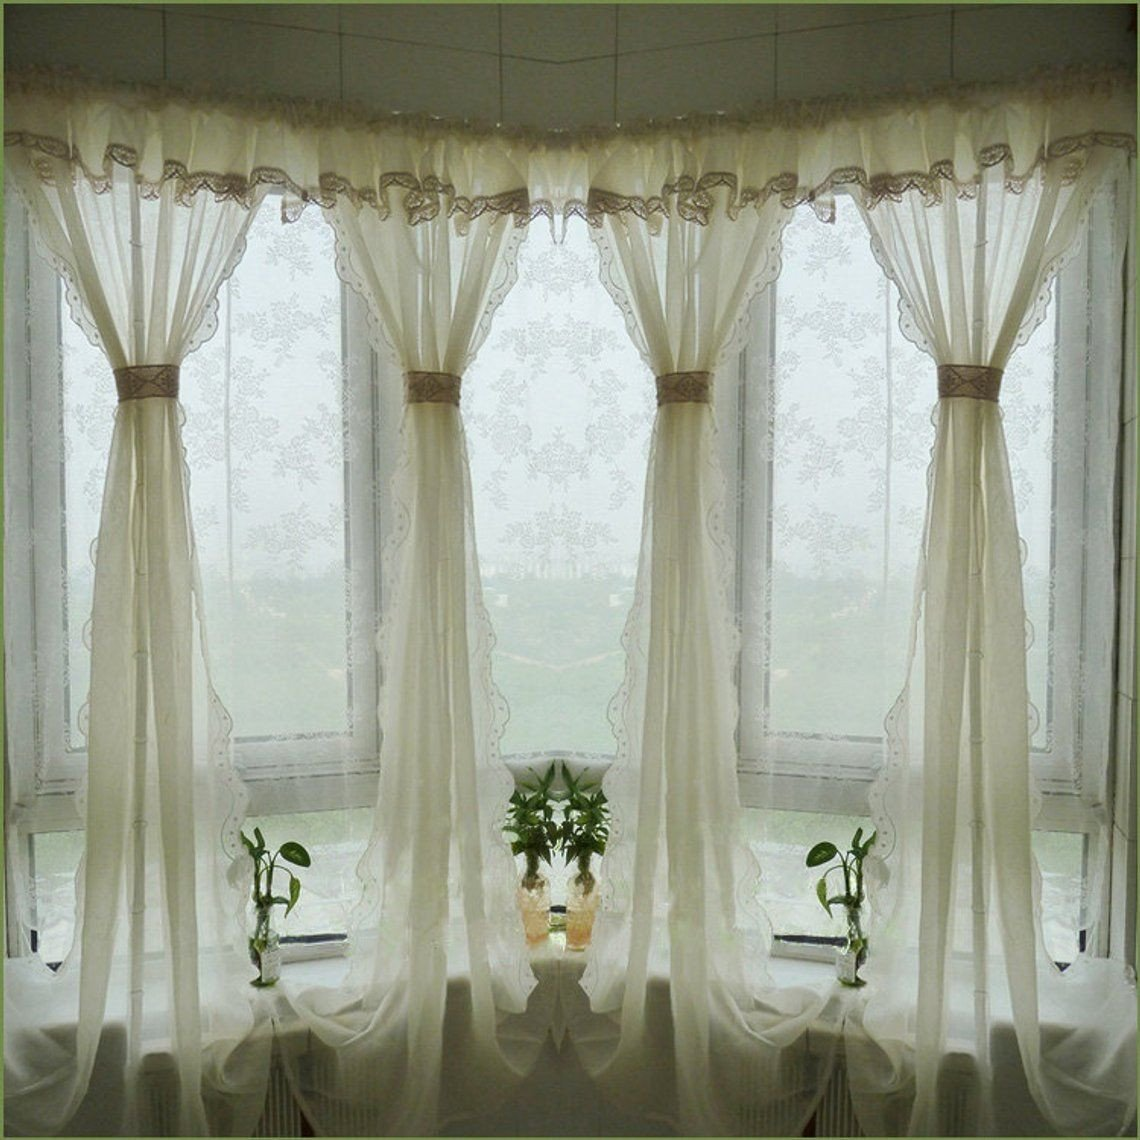 Balloon Curtains for Bedroom Luxury Pair Of Shabby Chic Fixed Valance with Hem Lace Creamy